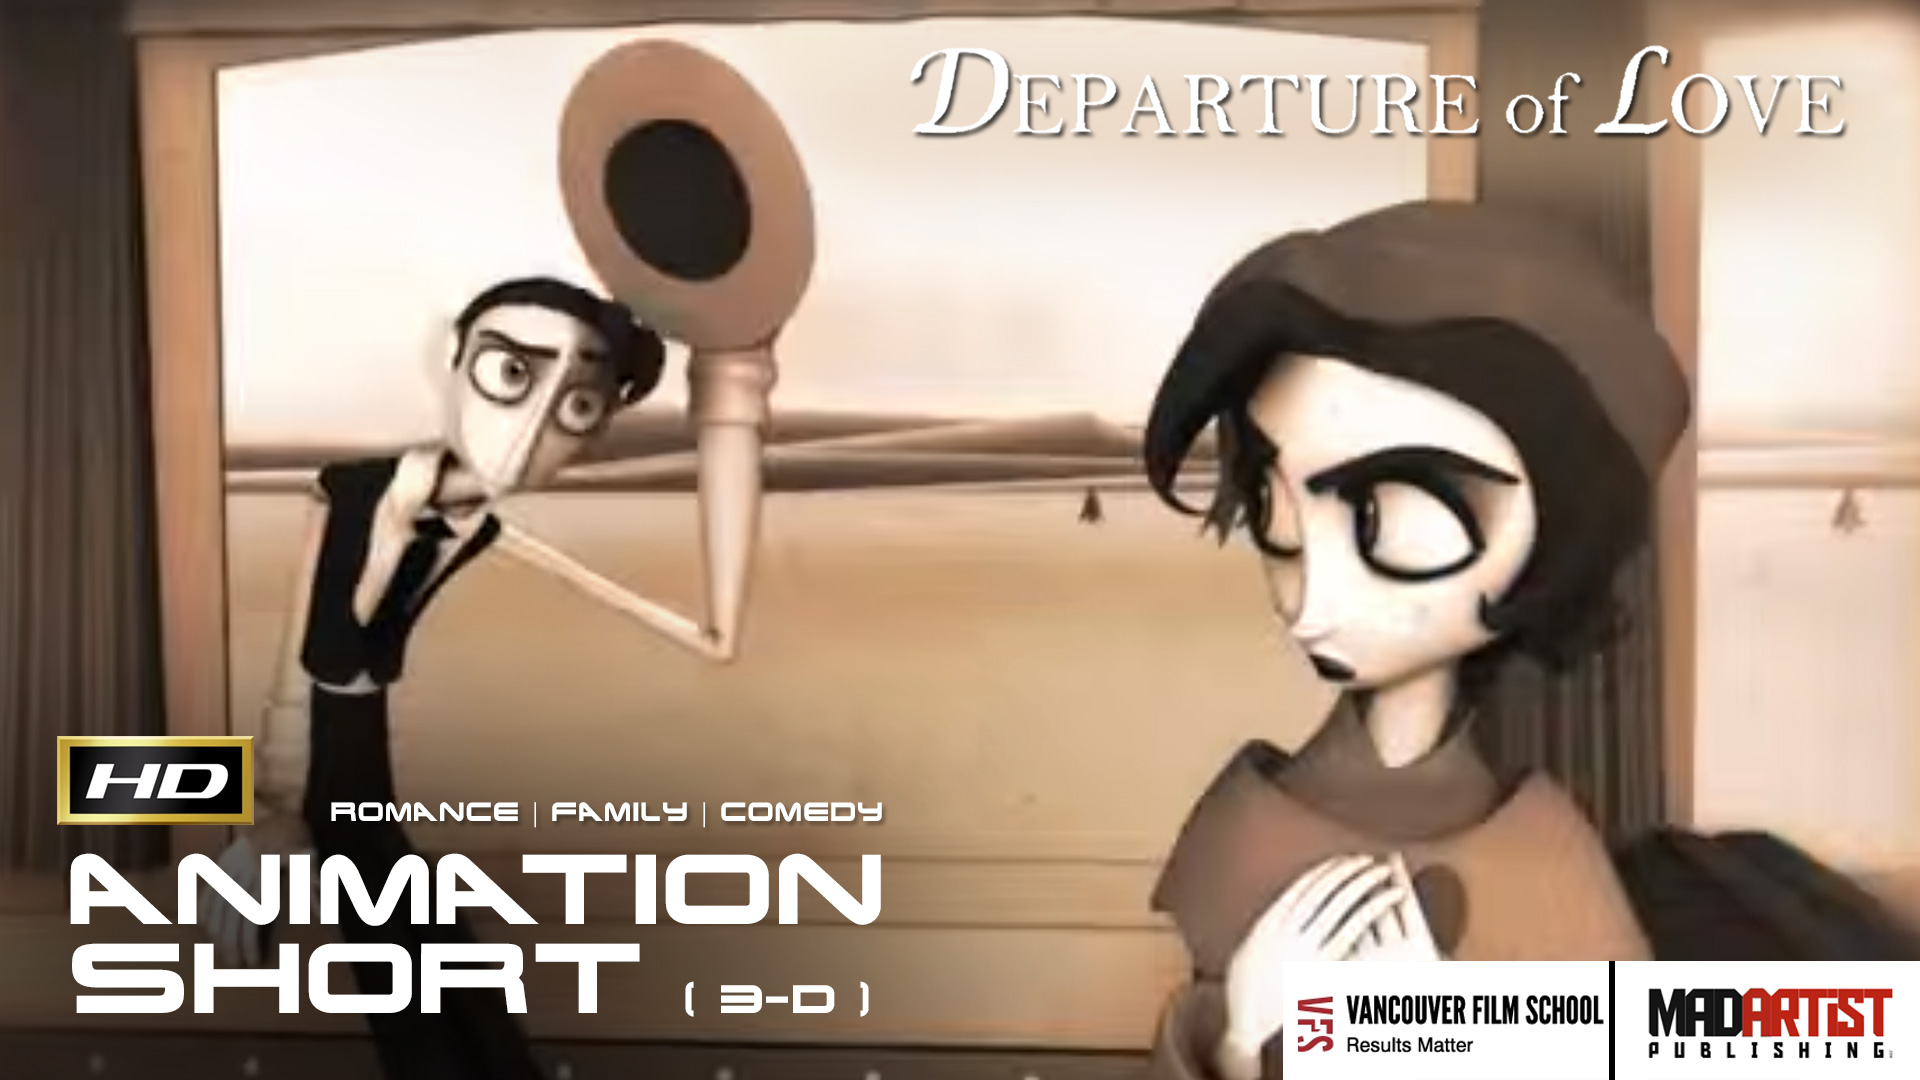 DEPARTURE OF LOVE HD Funny Vintage Love Story CGI 3D Animated Short By Jennifer Bors Ringling